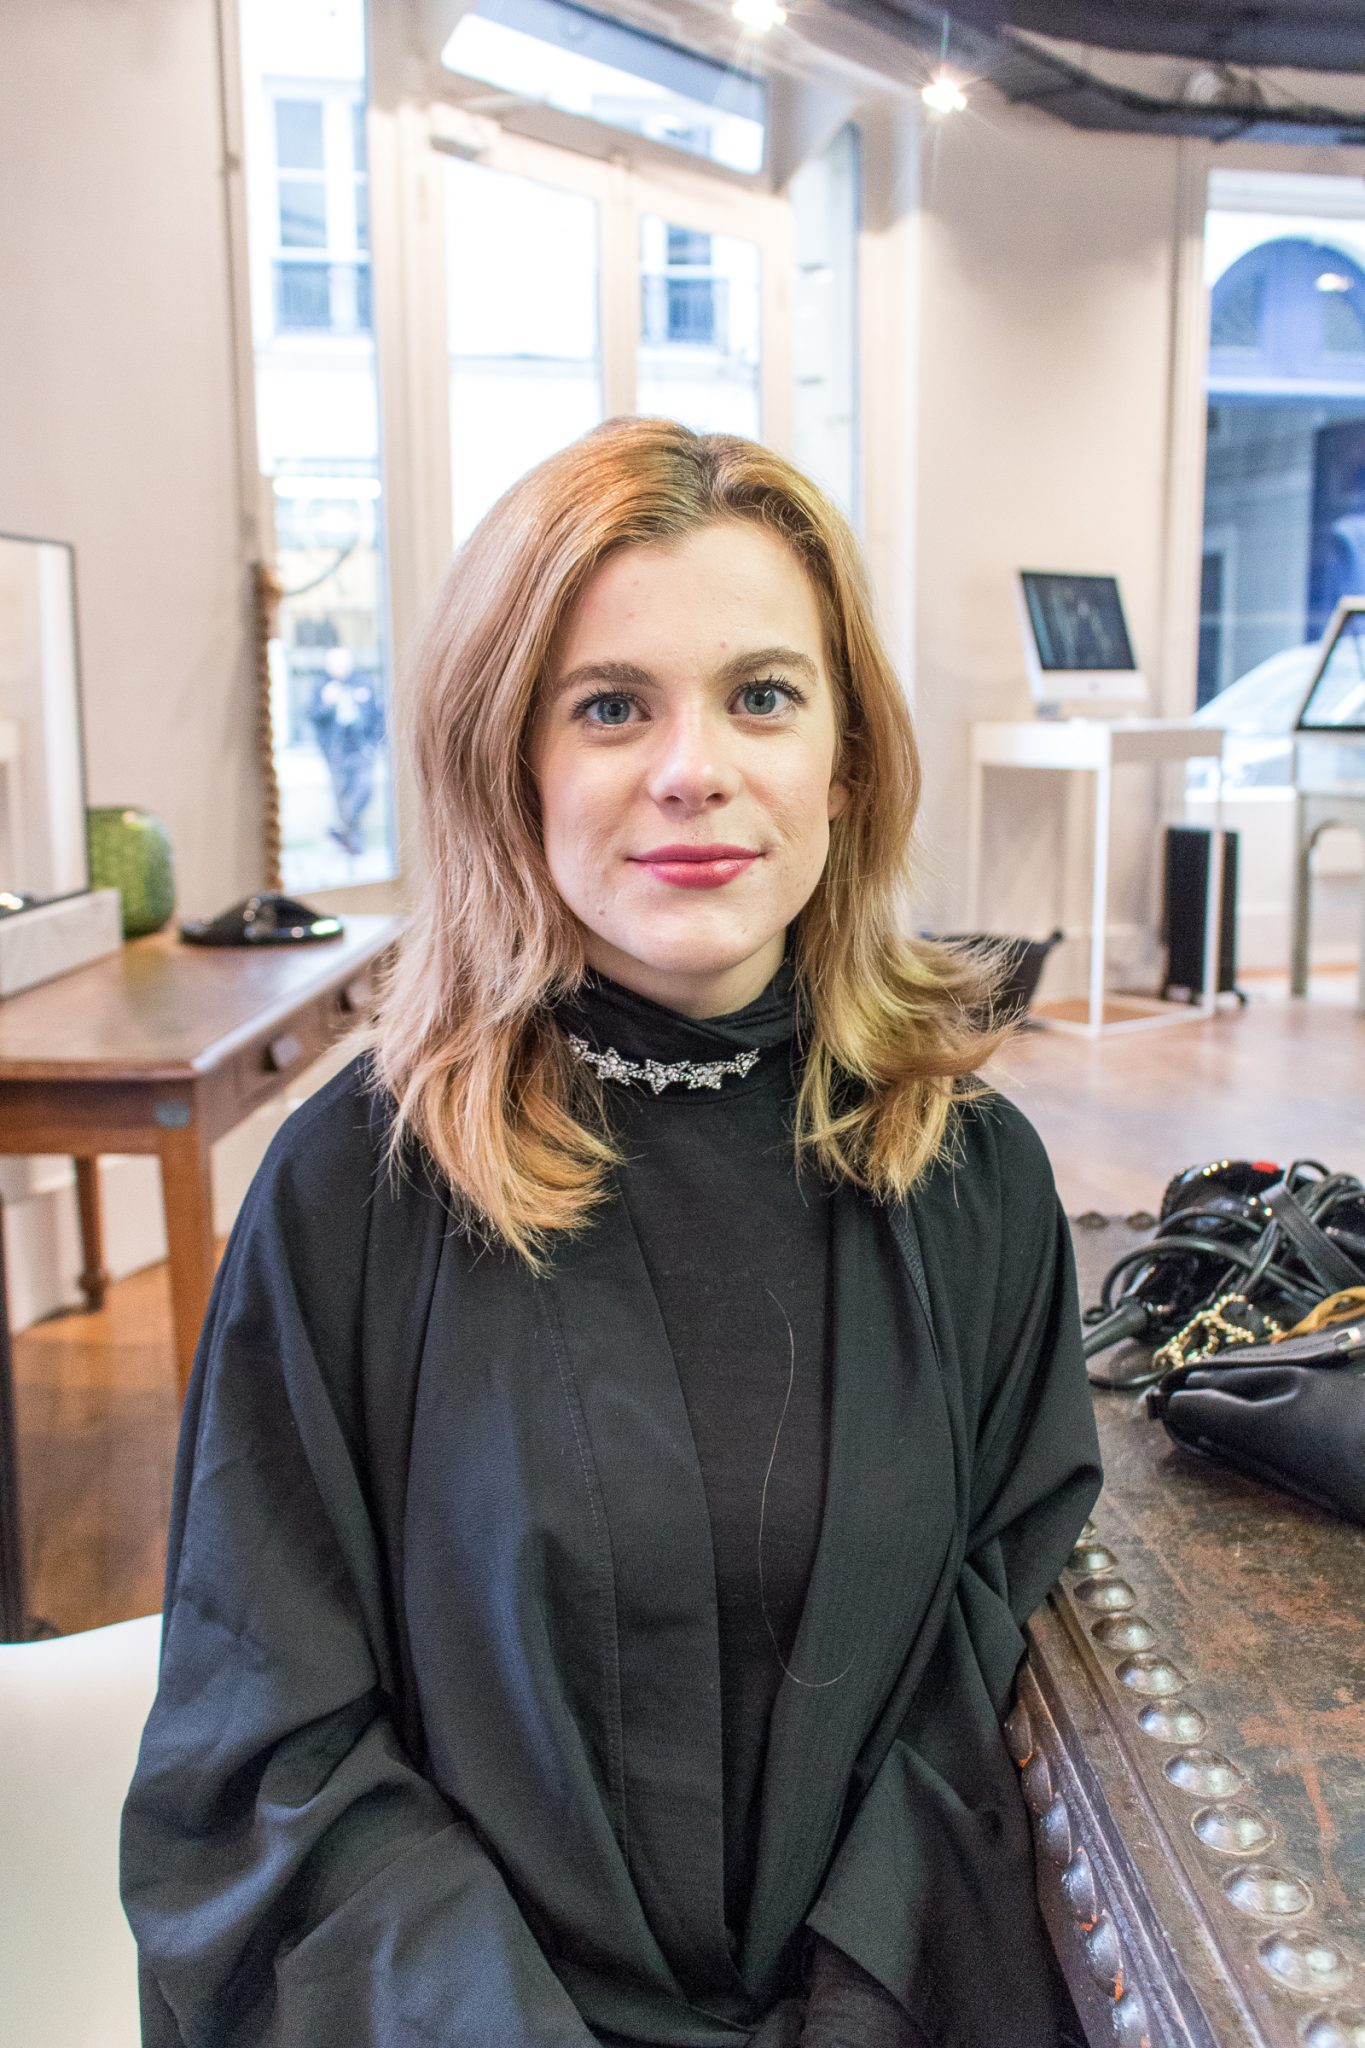 The Best English Speaking Hair Salon In Paris The Glittering Unknown